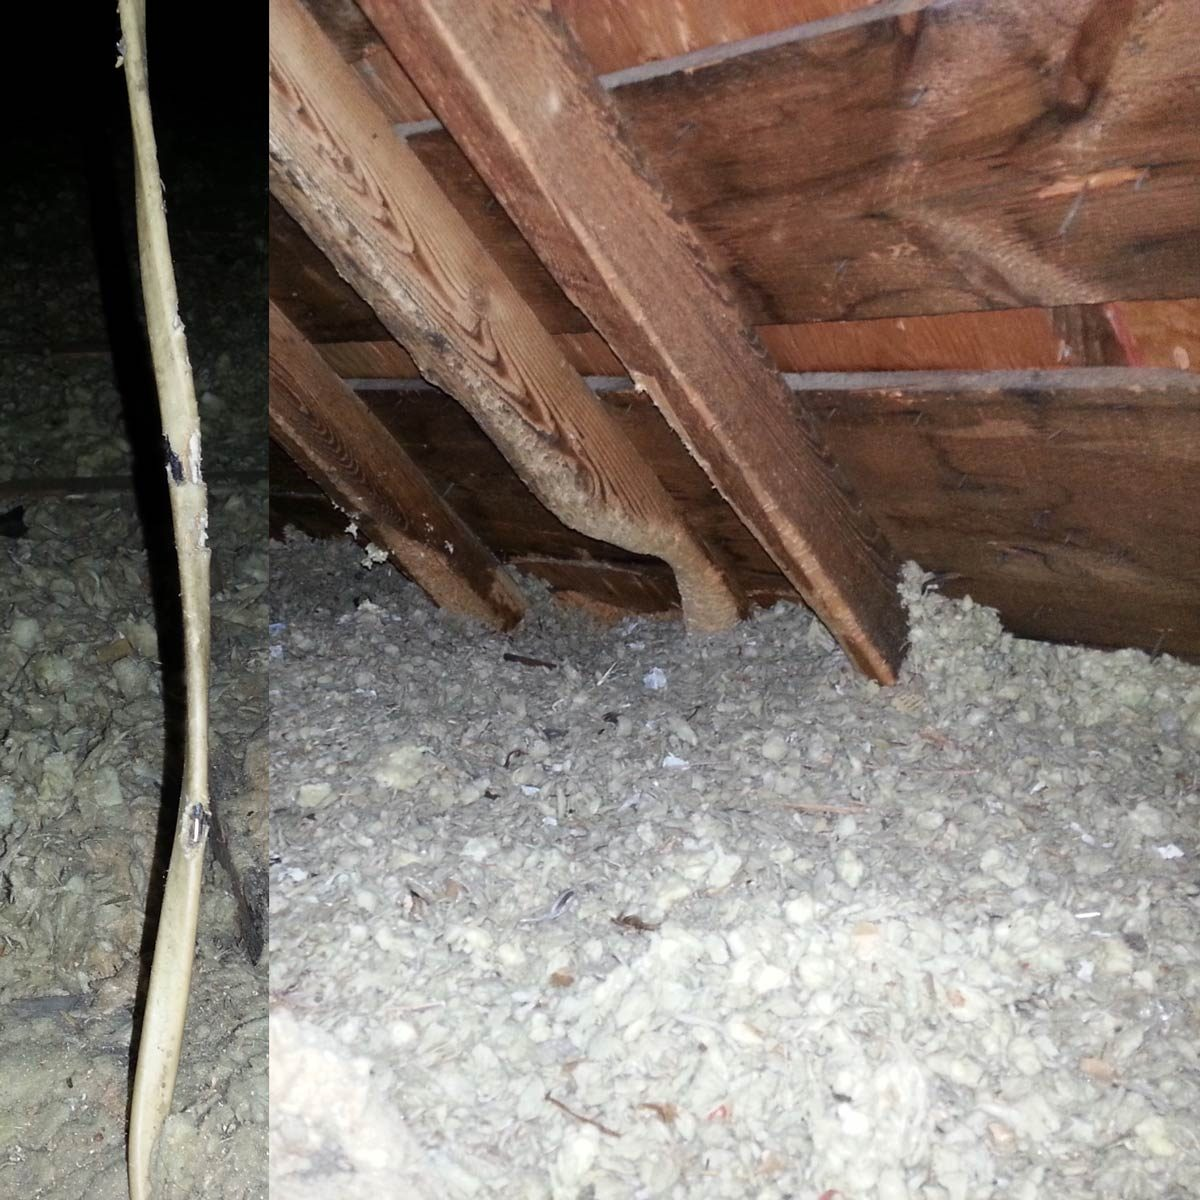 Beaver in the Attic!